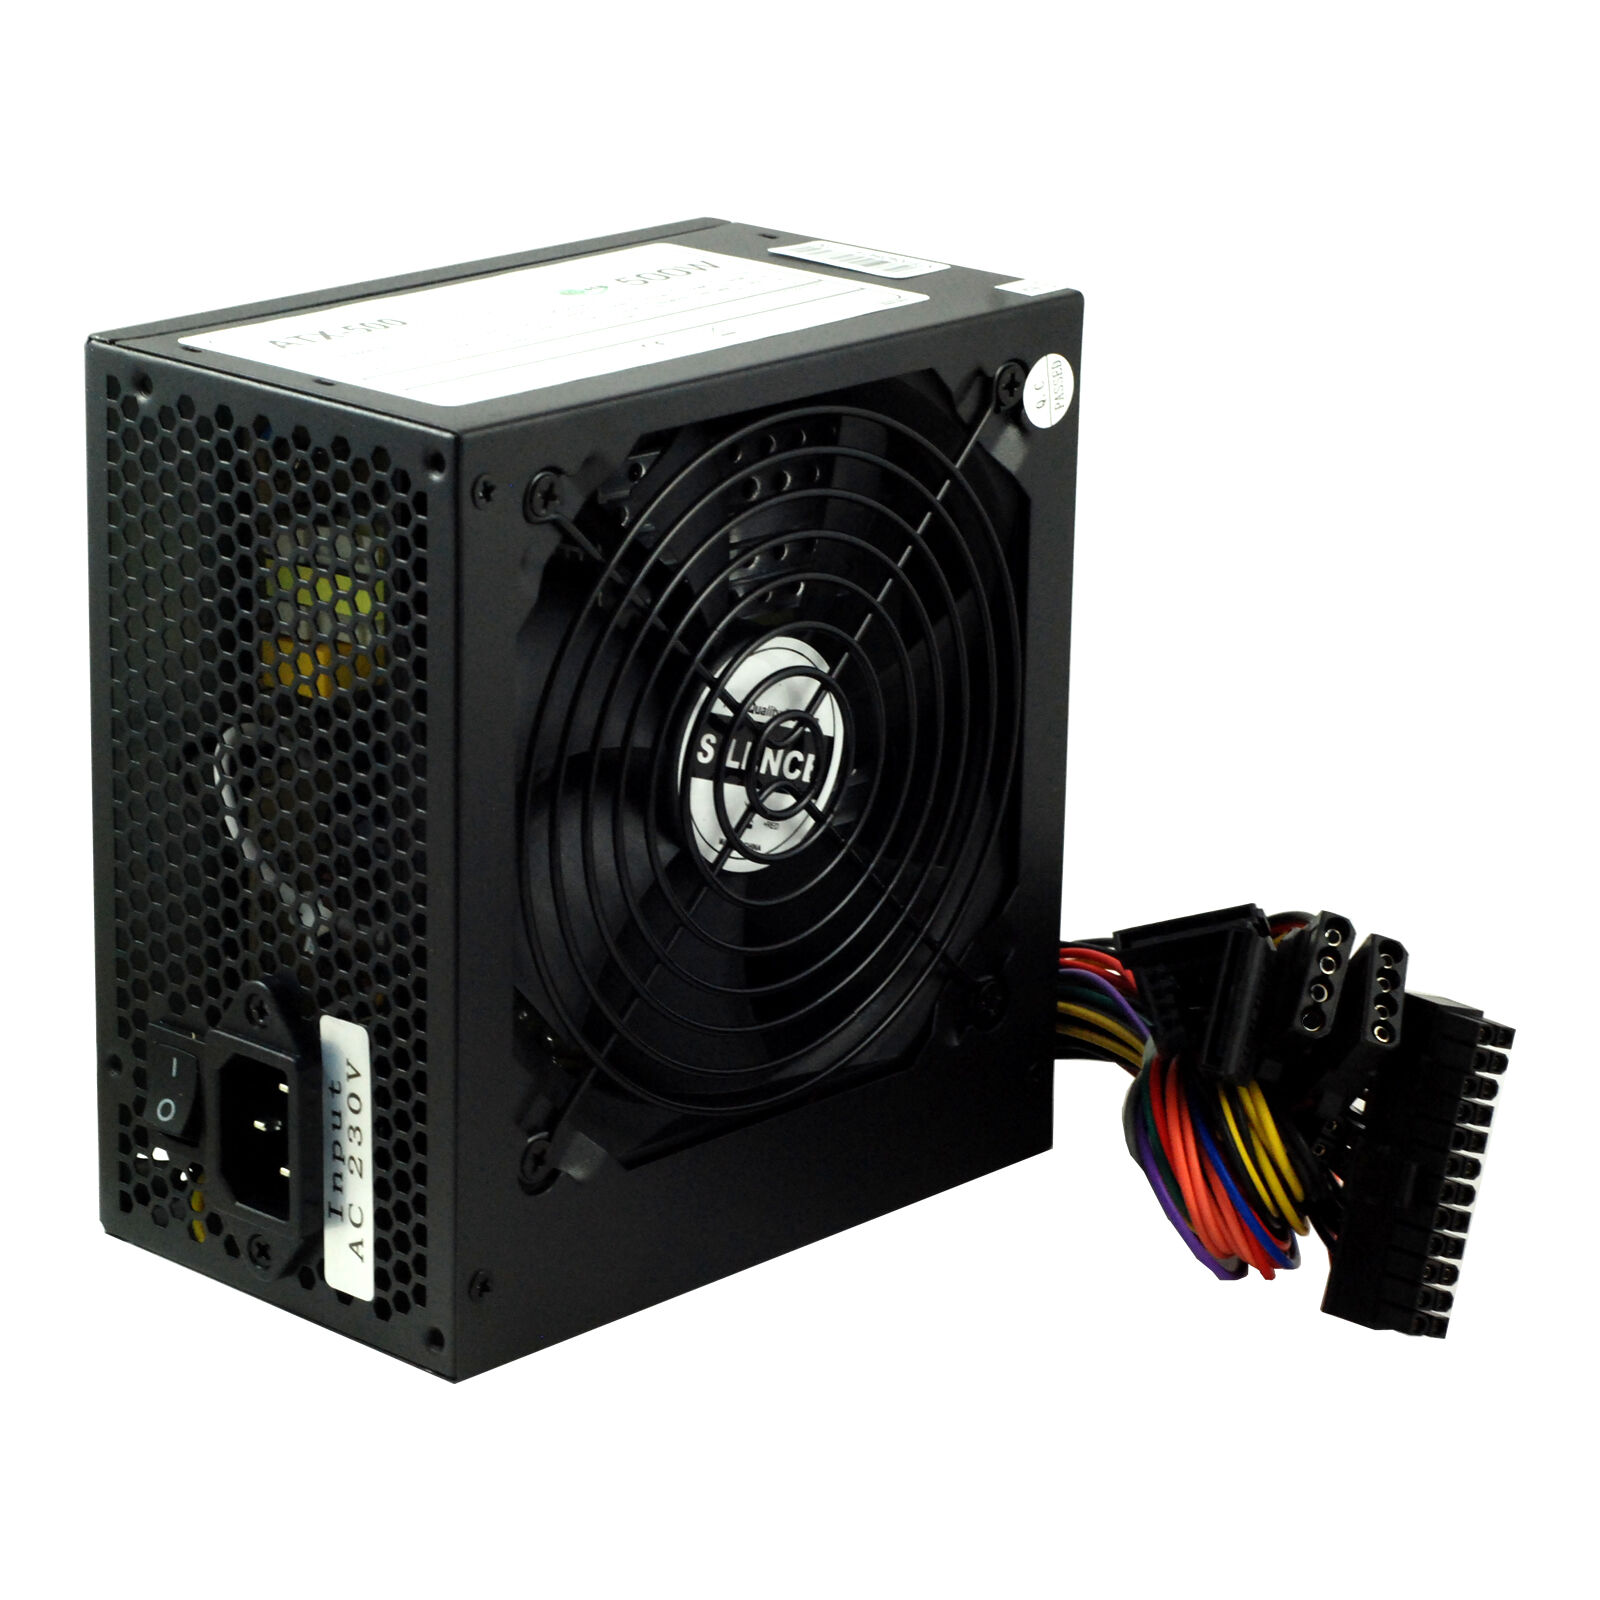 Black 500W 12CM Silent Fan PC Power Supply ATX Computer PSU 500 Watt ...